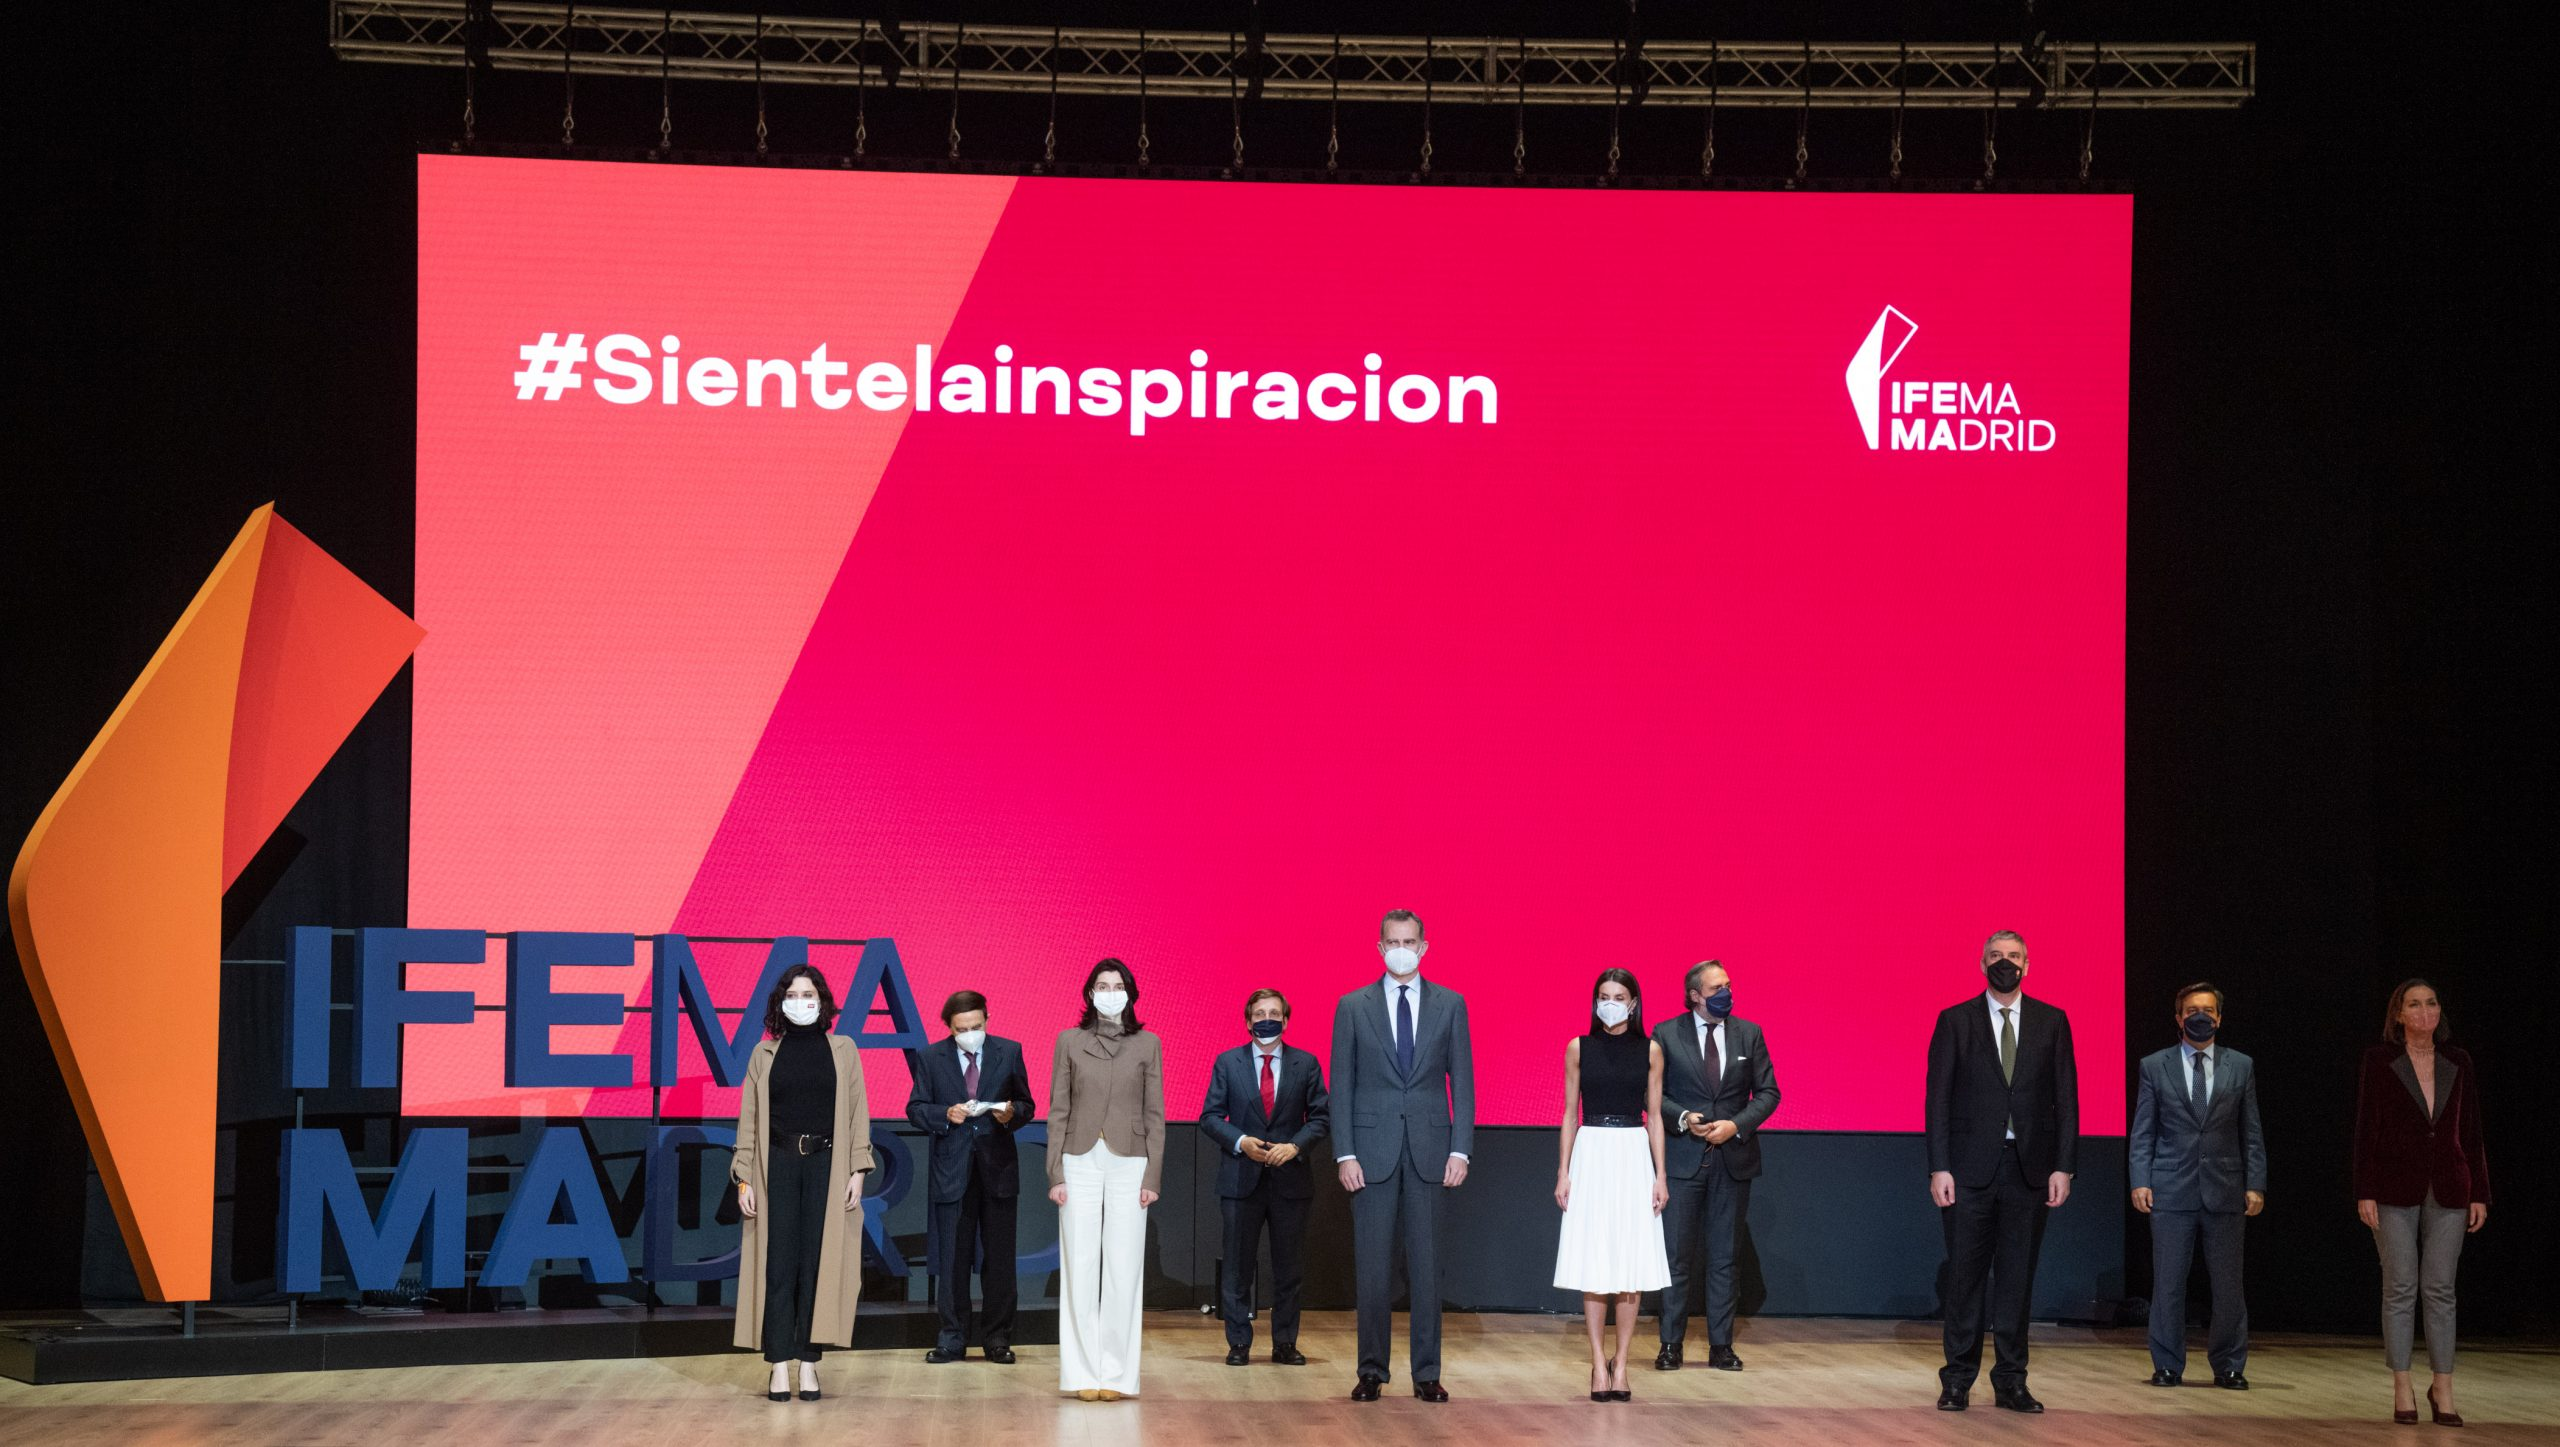 IFEMA Madrid launches its leadership in digital business with a renewed brand